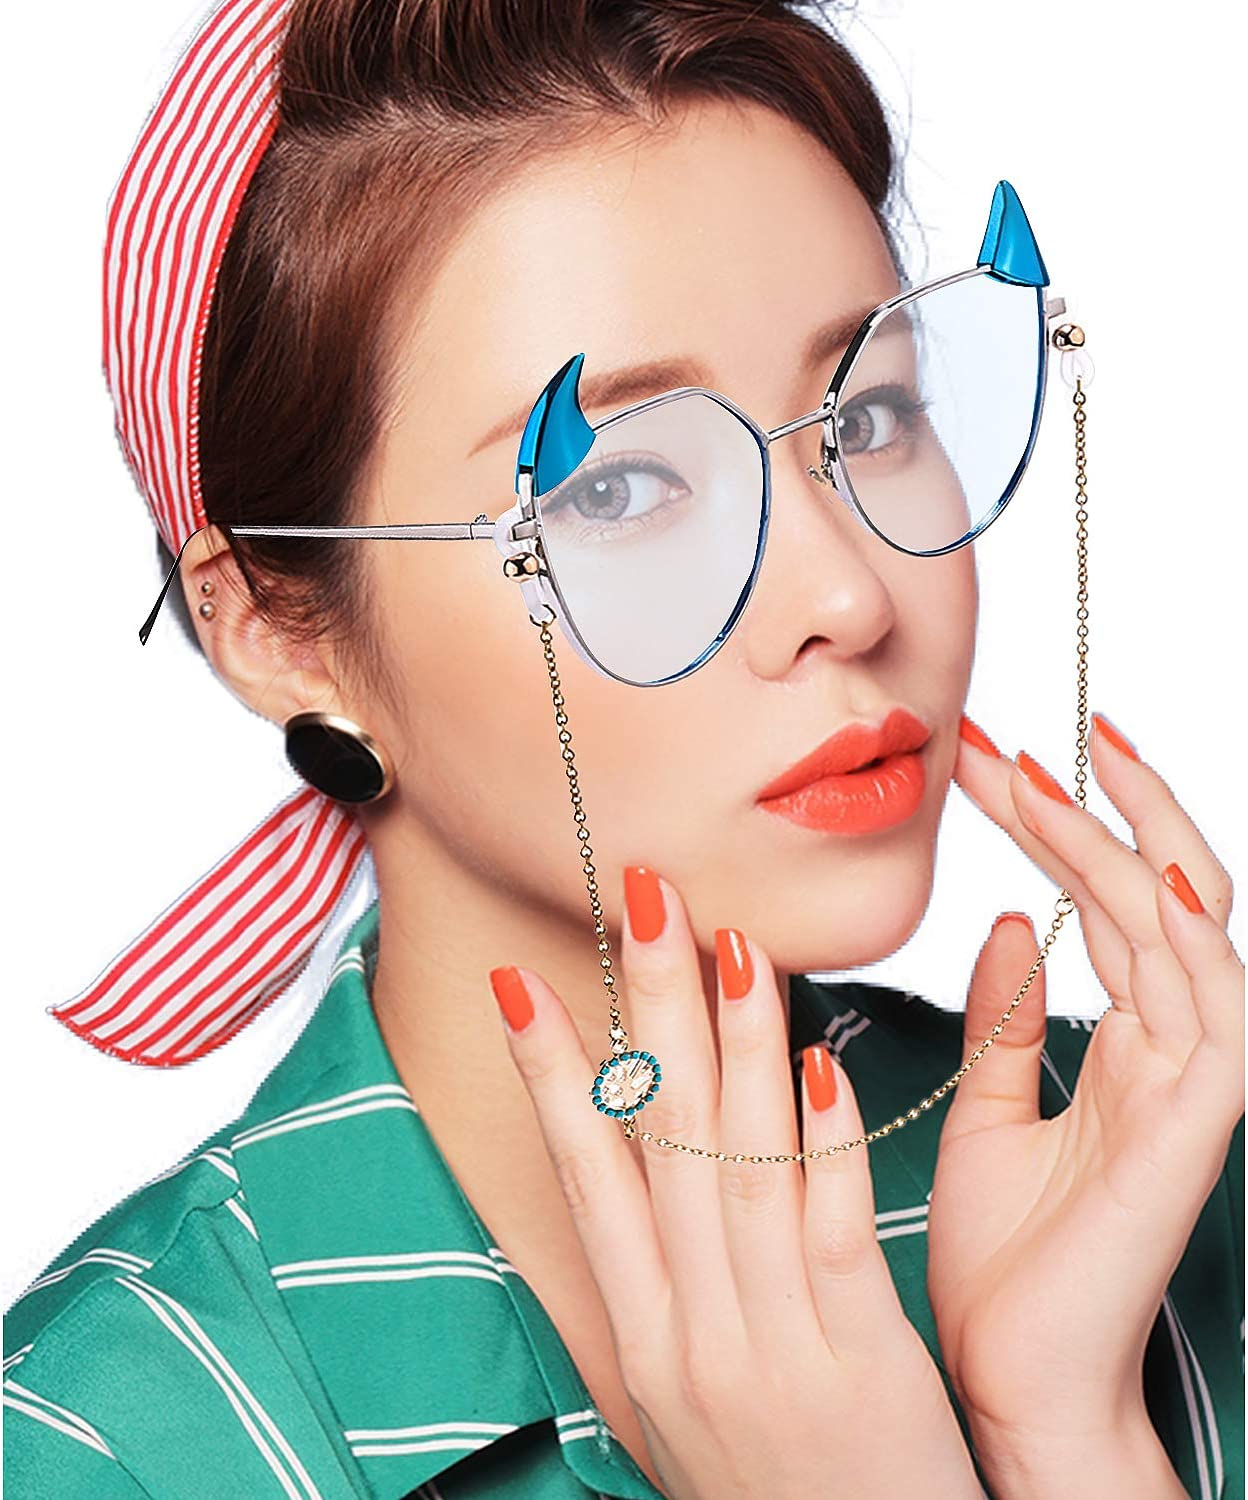 4 Colors 40 Pieces Rubber Adjustable Eyeglass Chain Ends Eyeglasses Strap Holder Spectacle Chain Loops for Eyeglass Chain